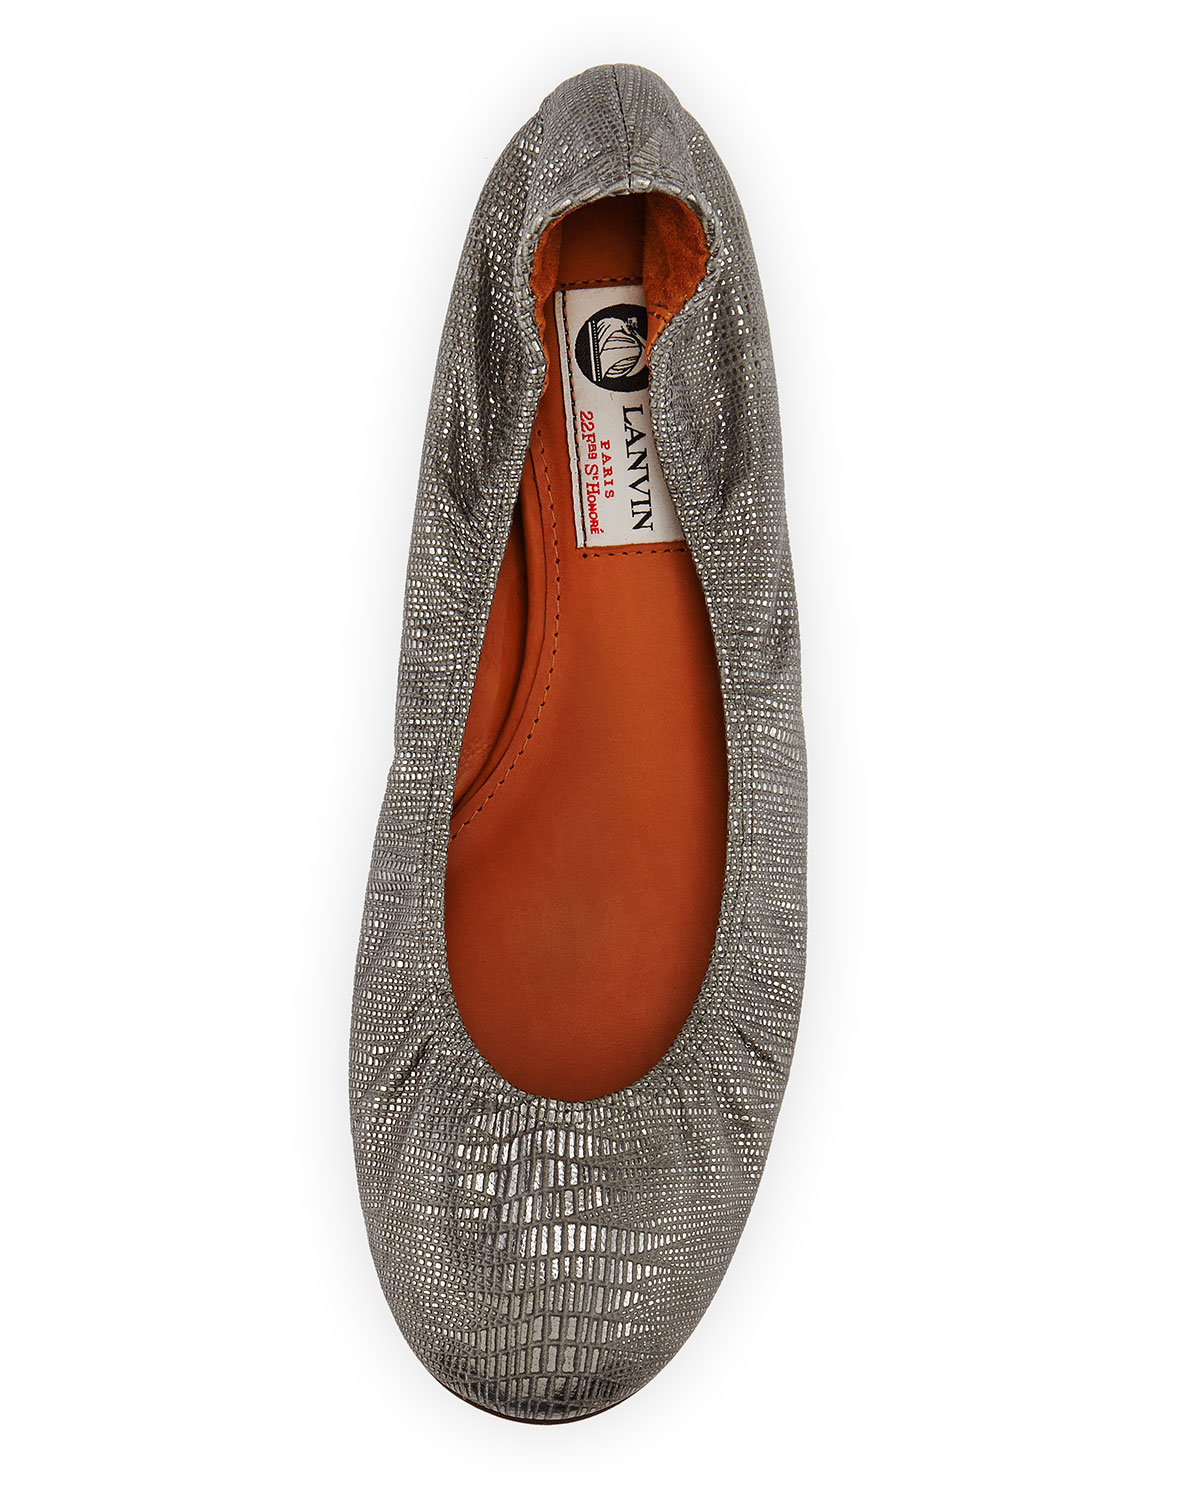 Lanvin Metallic Embossed Flats new sale online free shipping manchester great sale 5Q2uzUz